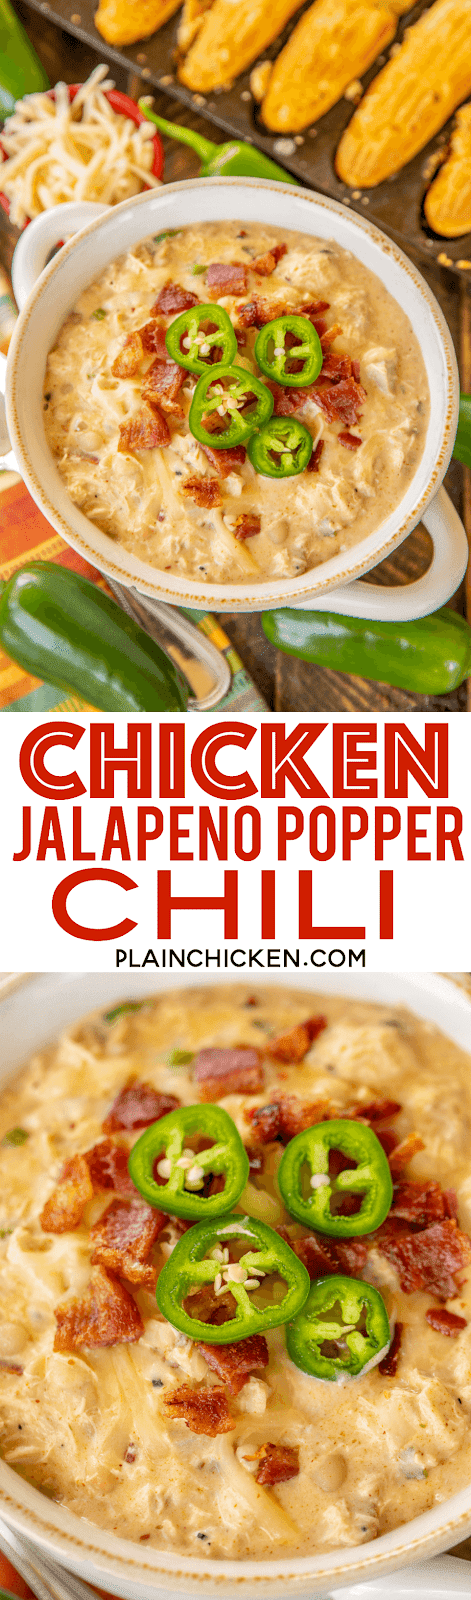 Chicken Jalapeño Popper Chili - the BEST of the BEST chicken chilis! SO good and ready to eat in under 20 minutes! Rotisserie chicken, bacon, white beans, jalapeños, chicken broth, onion, garlic, cumin, chili powder, half-and-half, cream cheese. Top with some extra bacon, jalapeños and pepper jack cheese. Makes a ton. Freeze leftovers for a quick meal later.